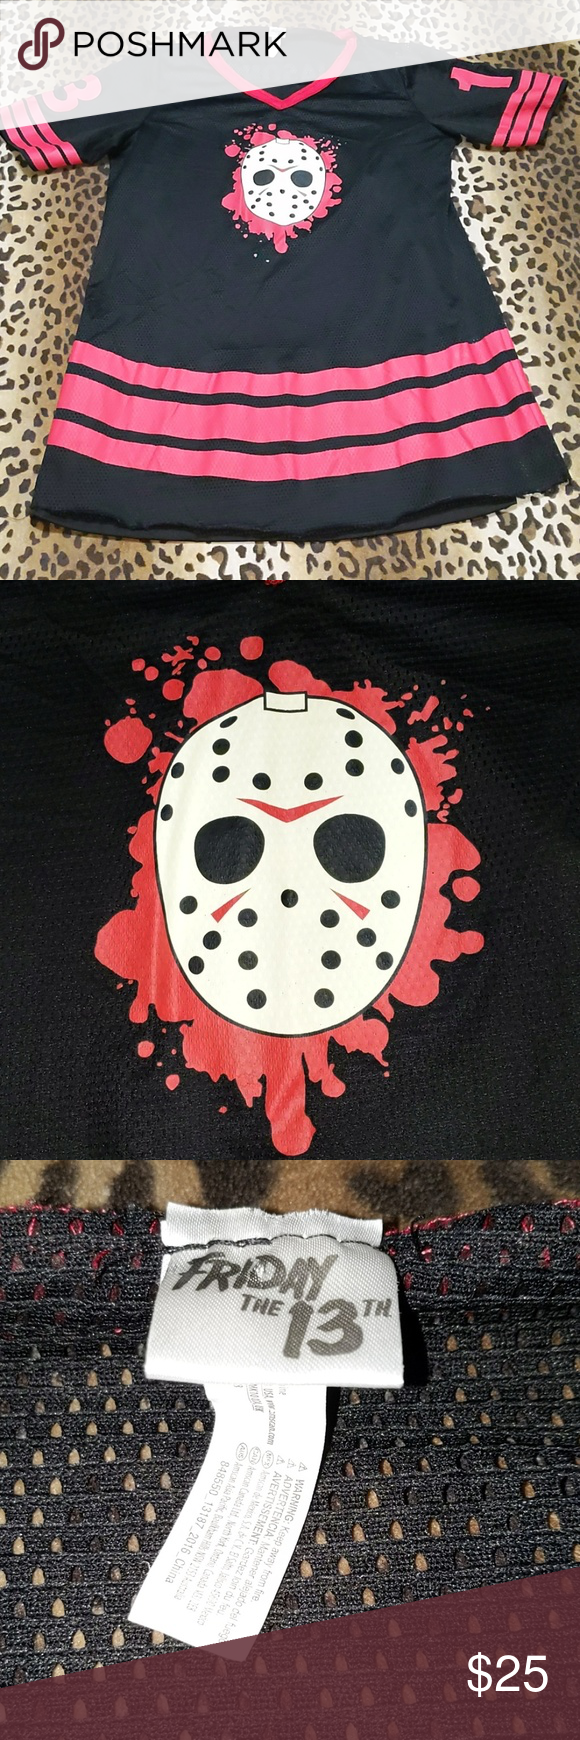 Jason Voorhees jersey dress Jason Voorhees jersey dress.  Women's medium.  Has lining dress connected underneath.  Great condition- open to offers and bundles. Hot Topic Dresses Mini #jasonvoorhees